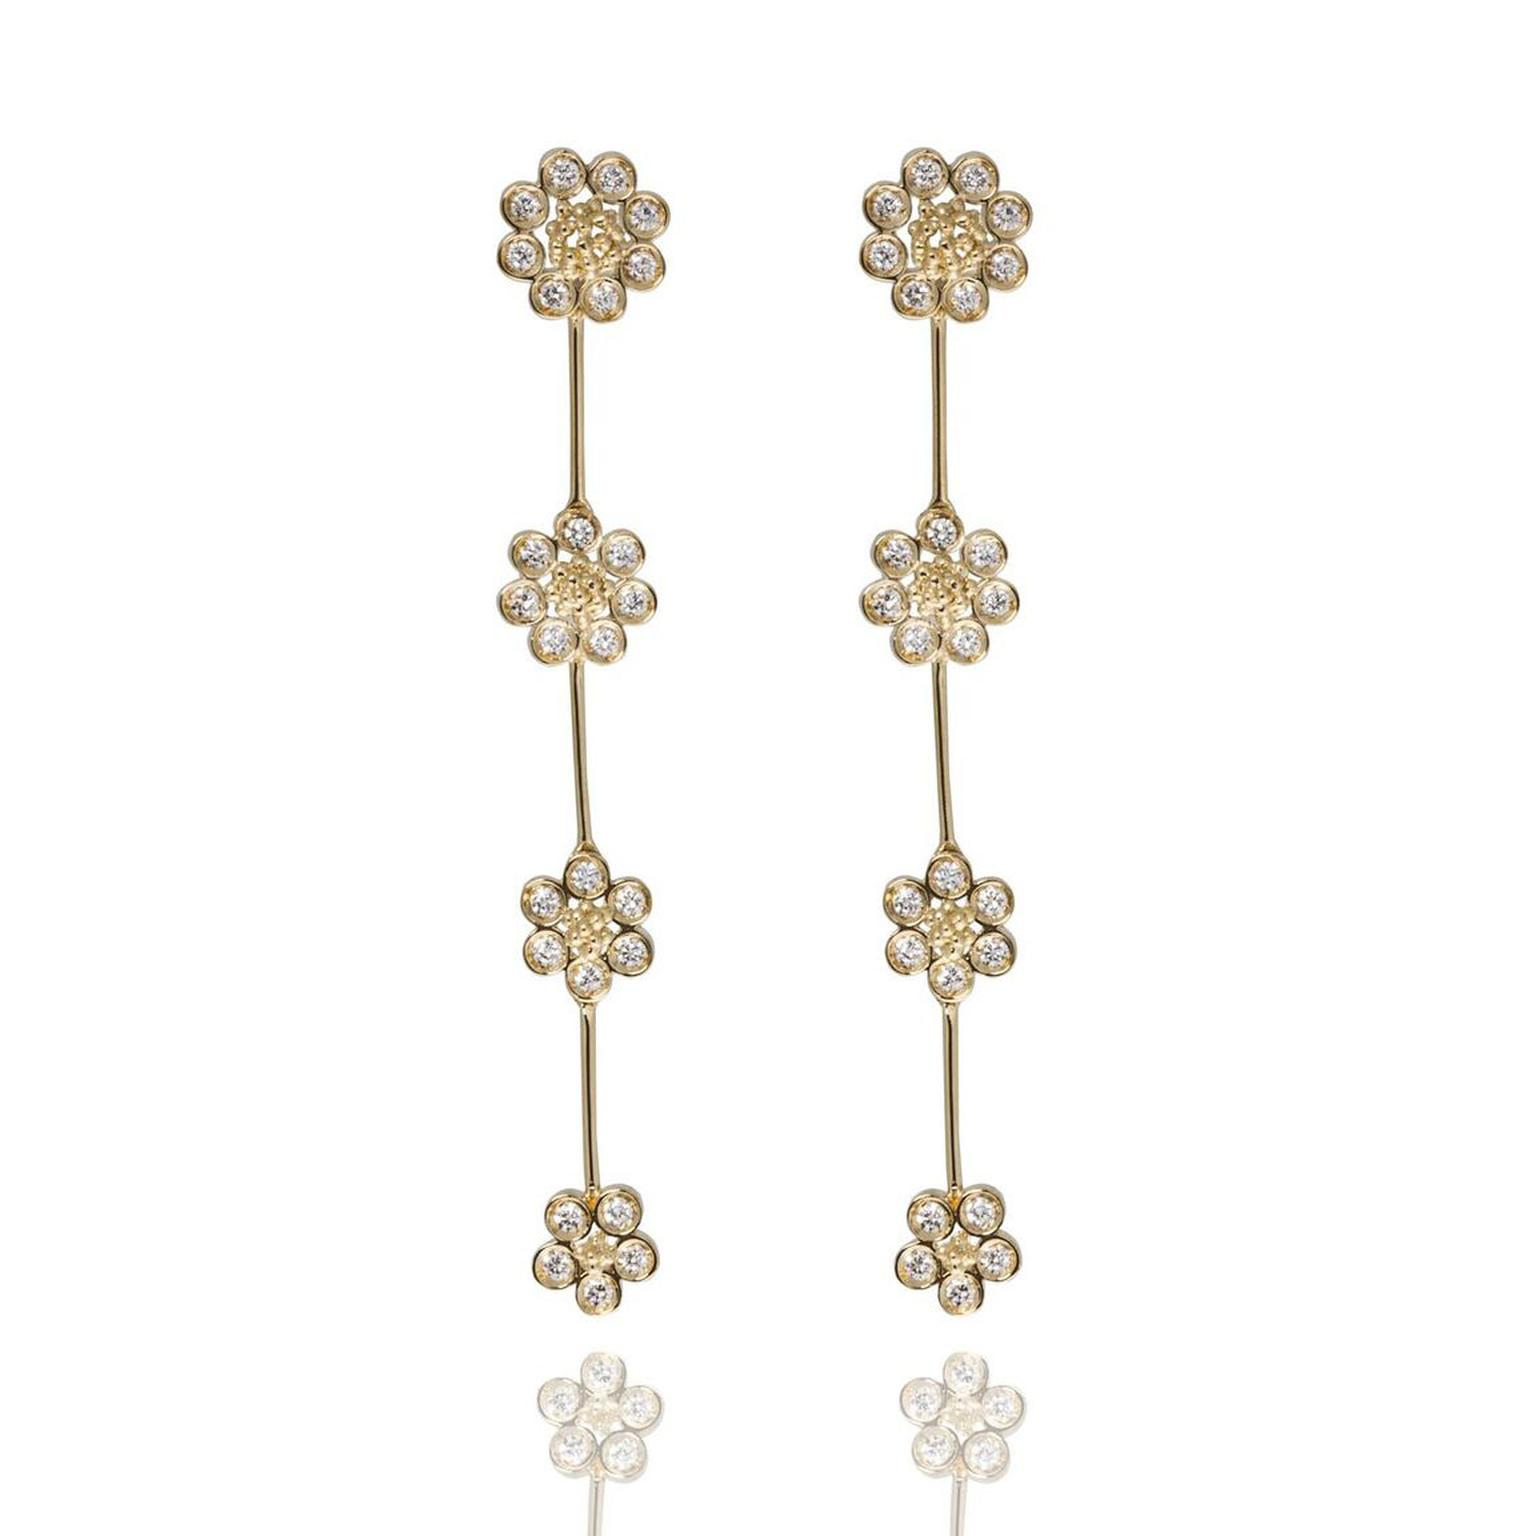 Carla Amorim daisy earrings in yellow gold and diamonds